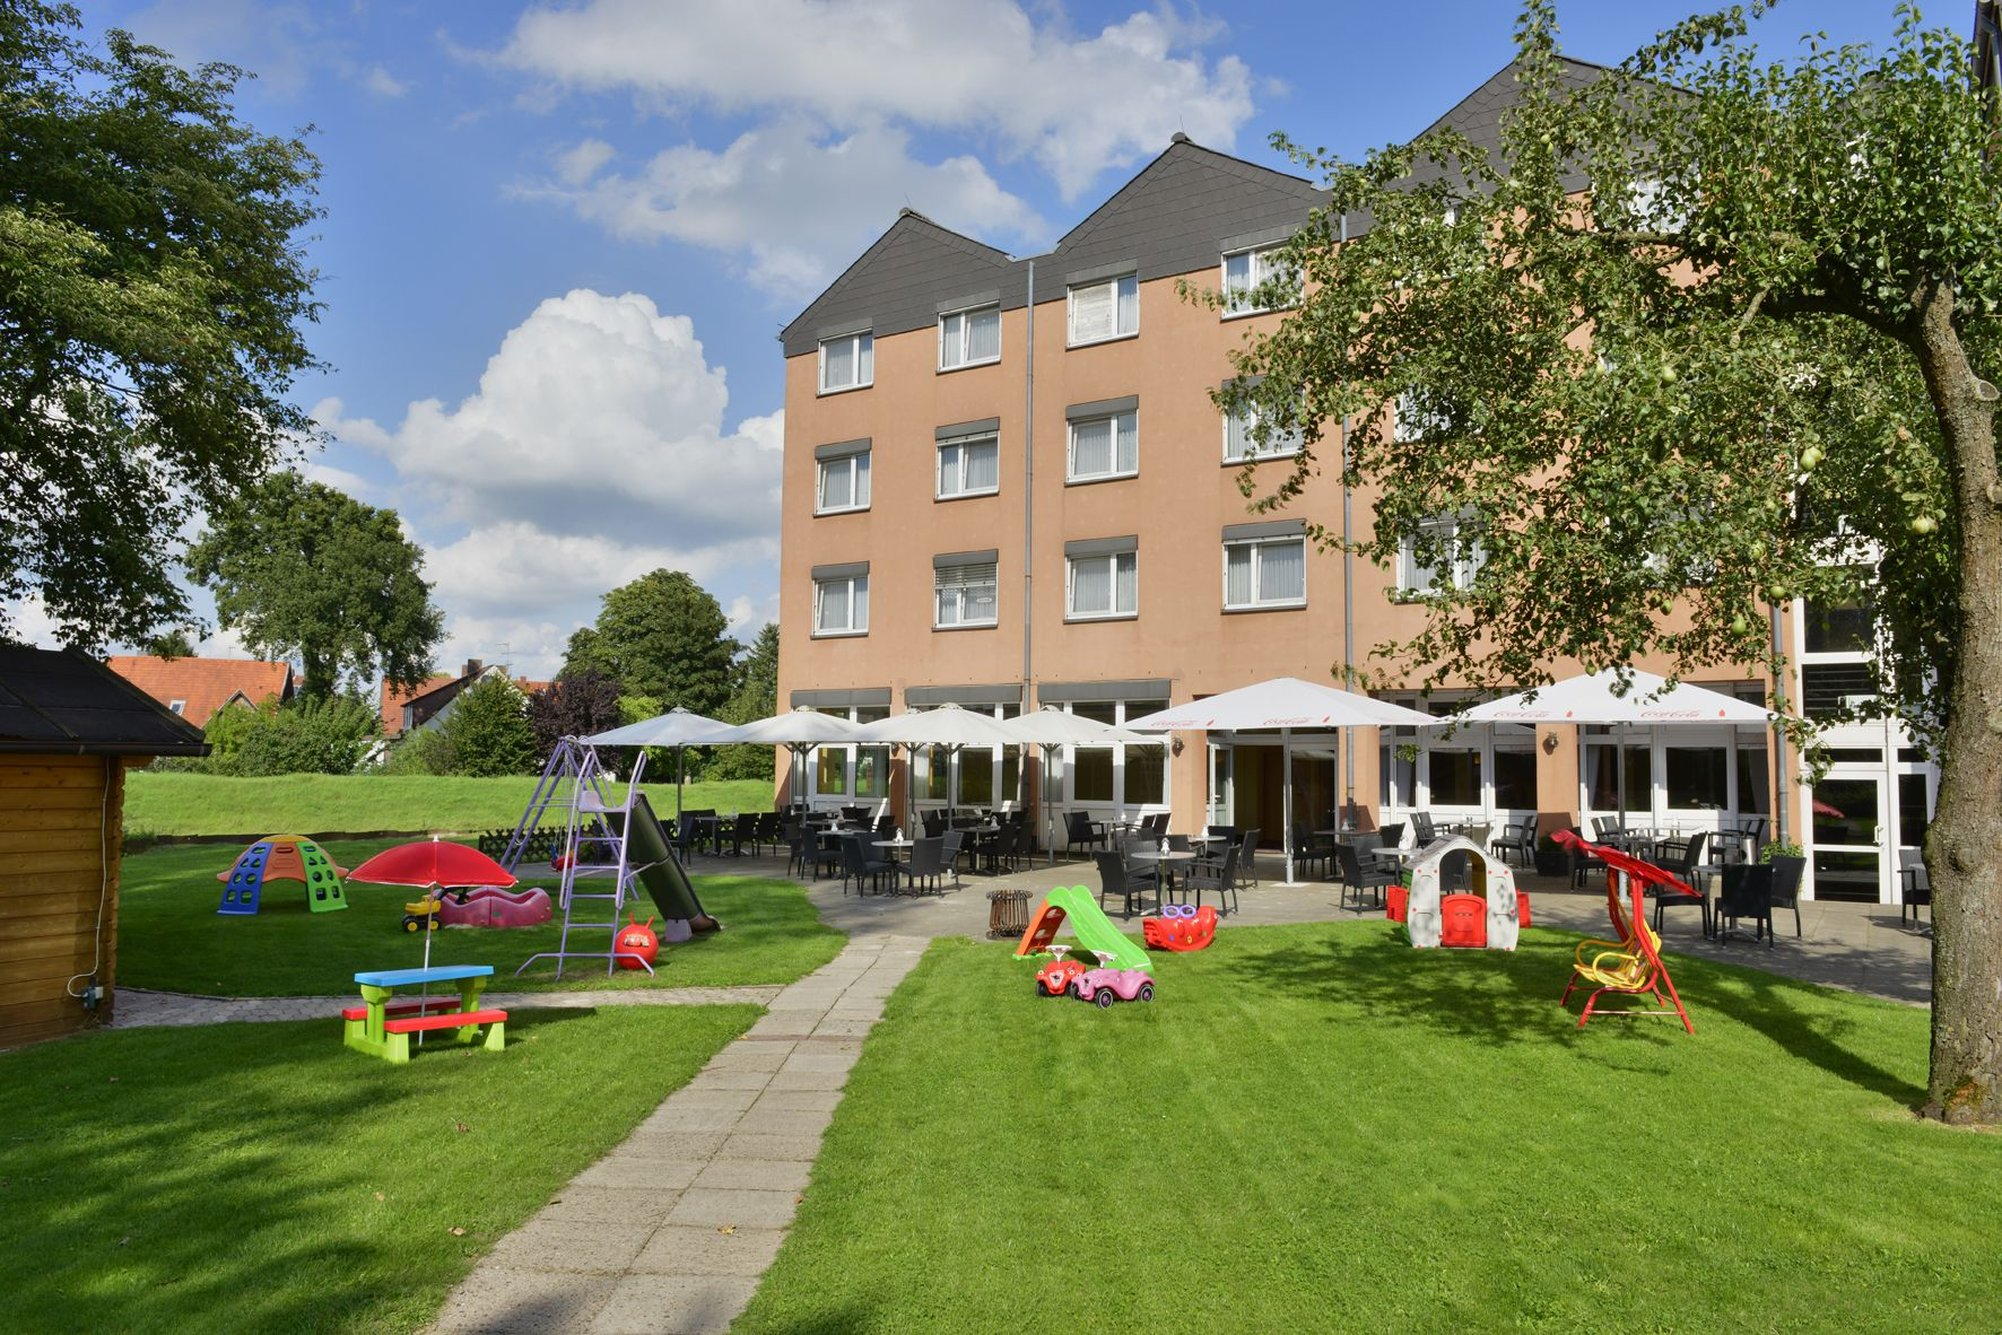 Michel Friends Hotel Lueneburger Heide First Class Hodenhagen Germany Hotels Gds Reservation Codes Travel Weekly Asia